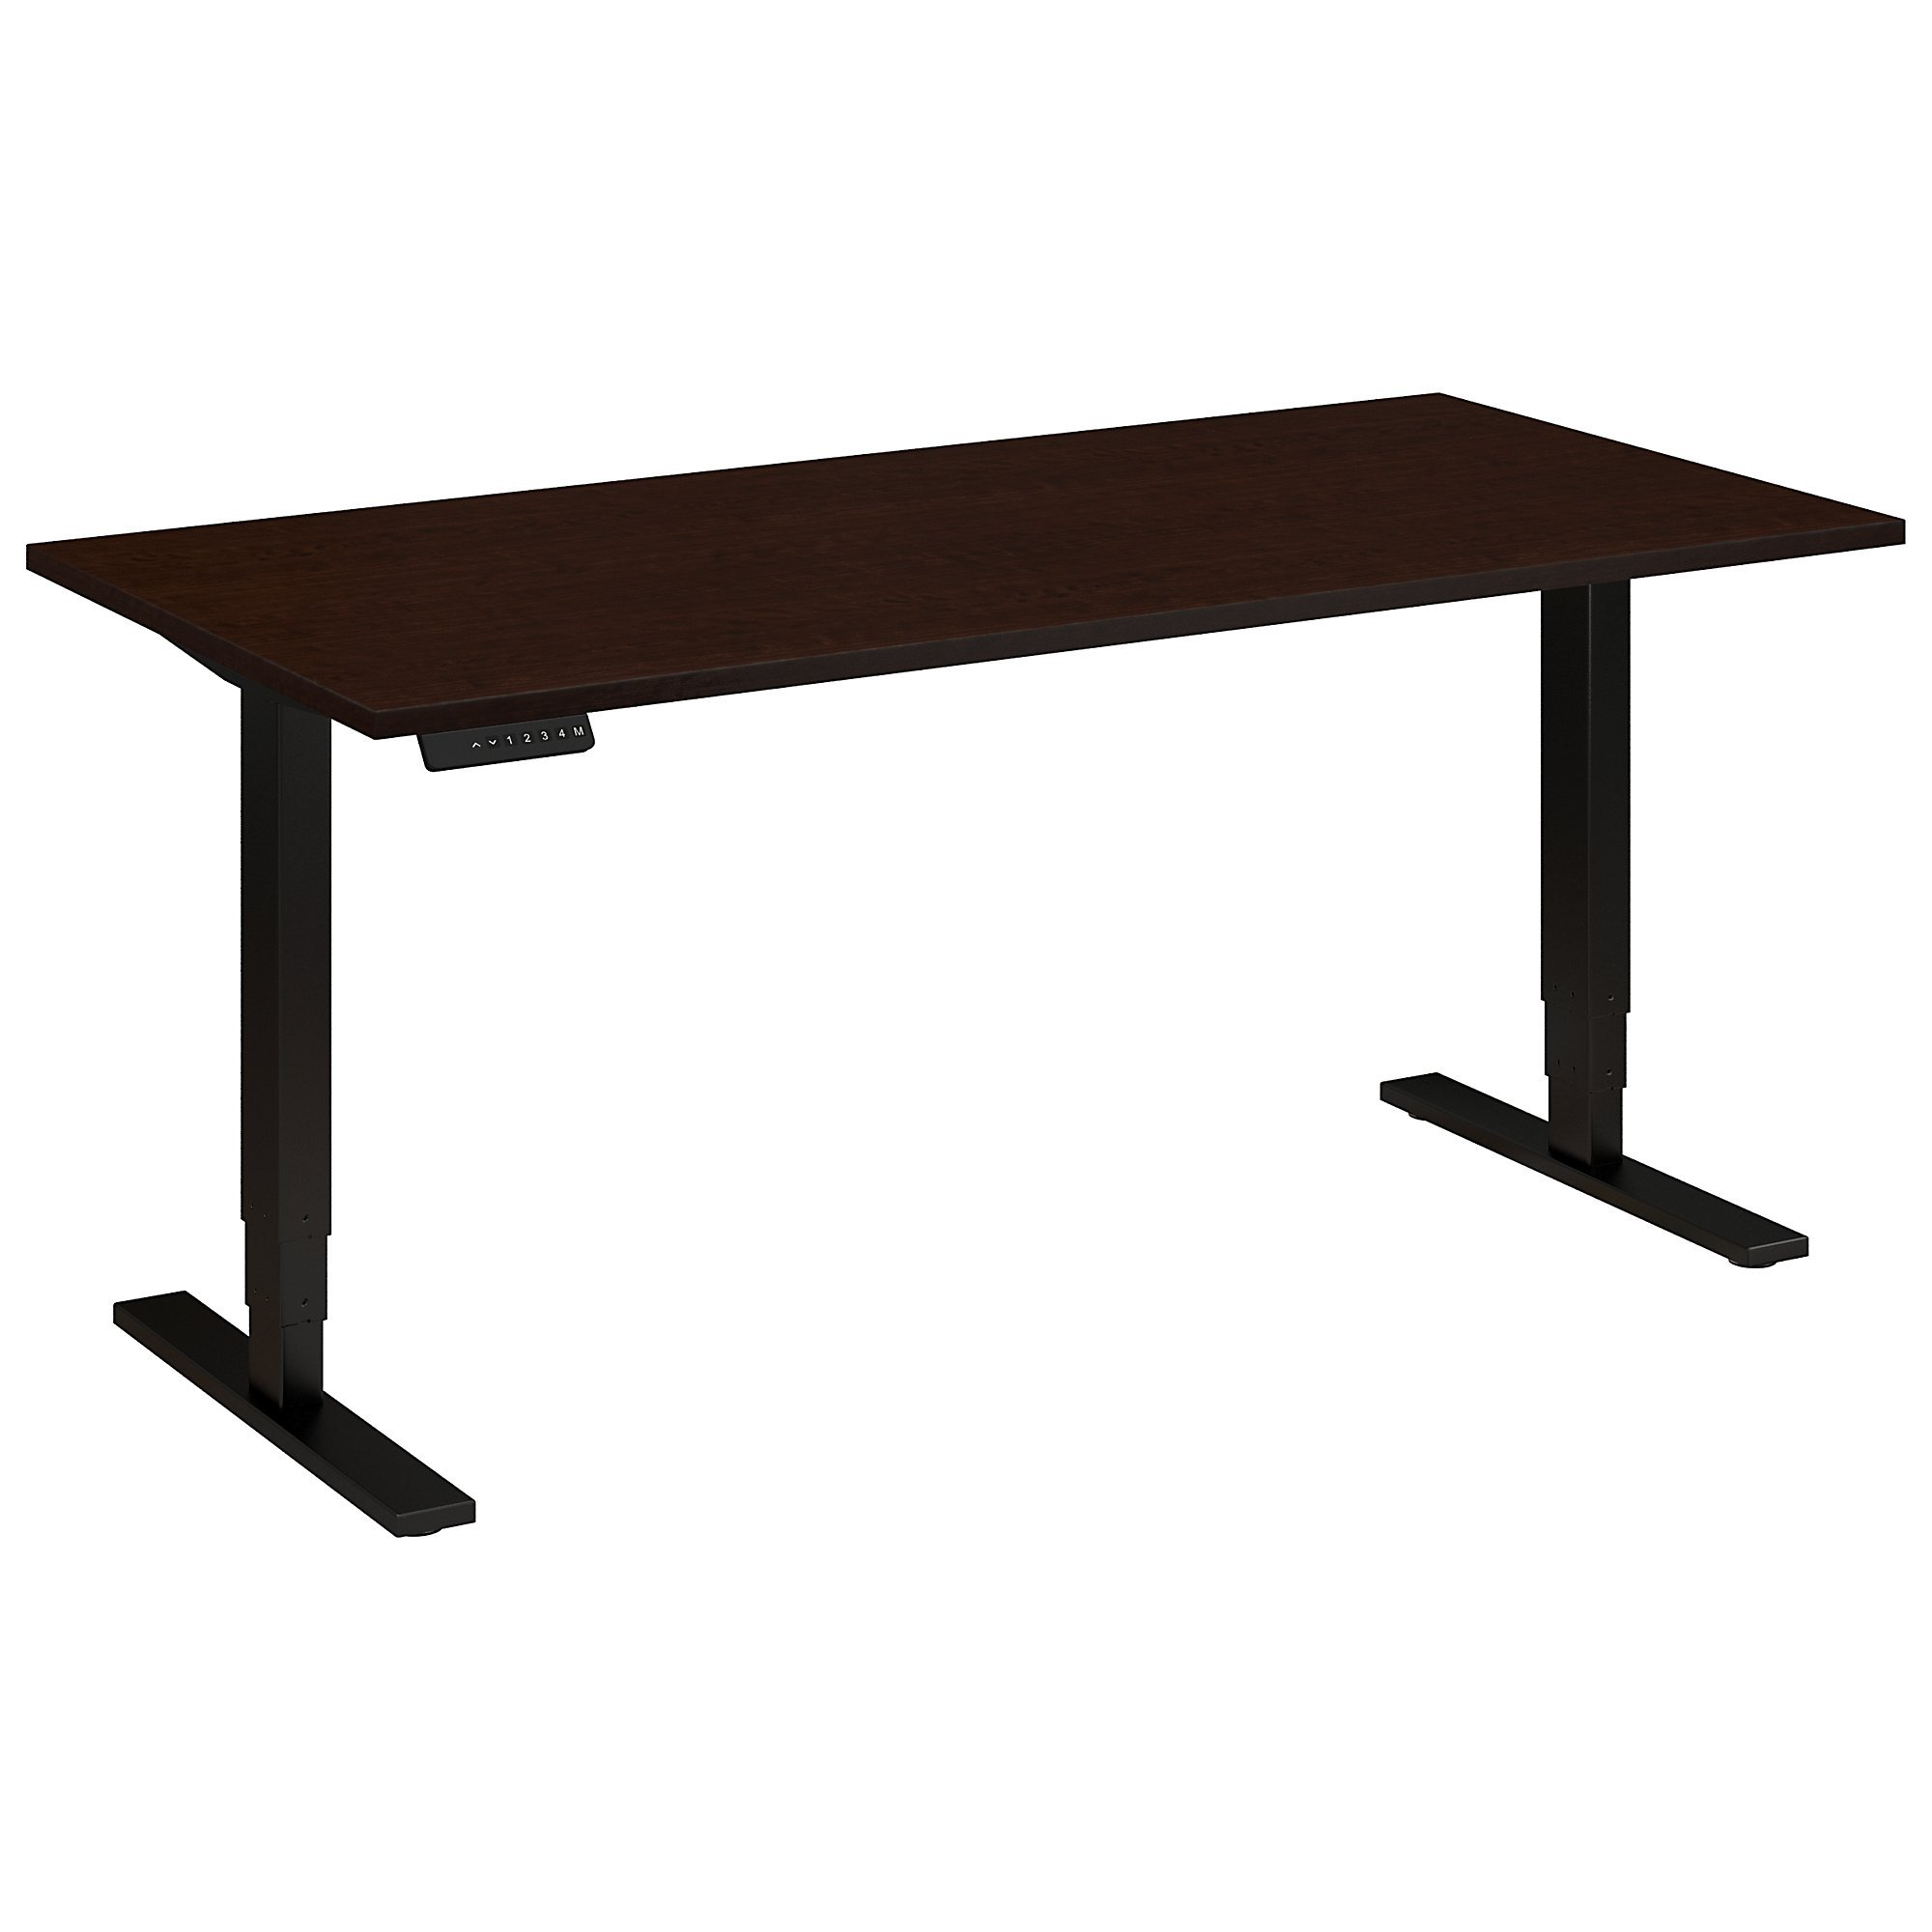 Move 80 Series 60W Height Adjustable Standing Desk in Mocha Cherry Satin with Black Base